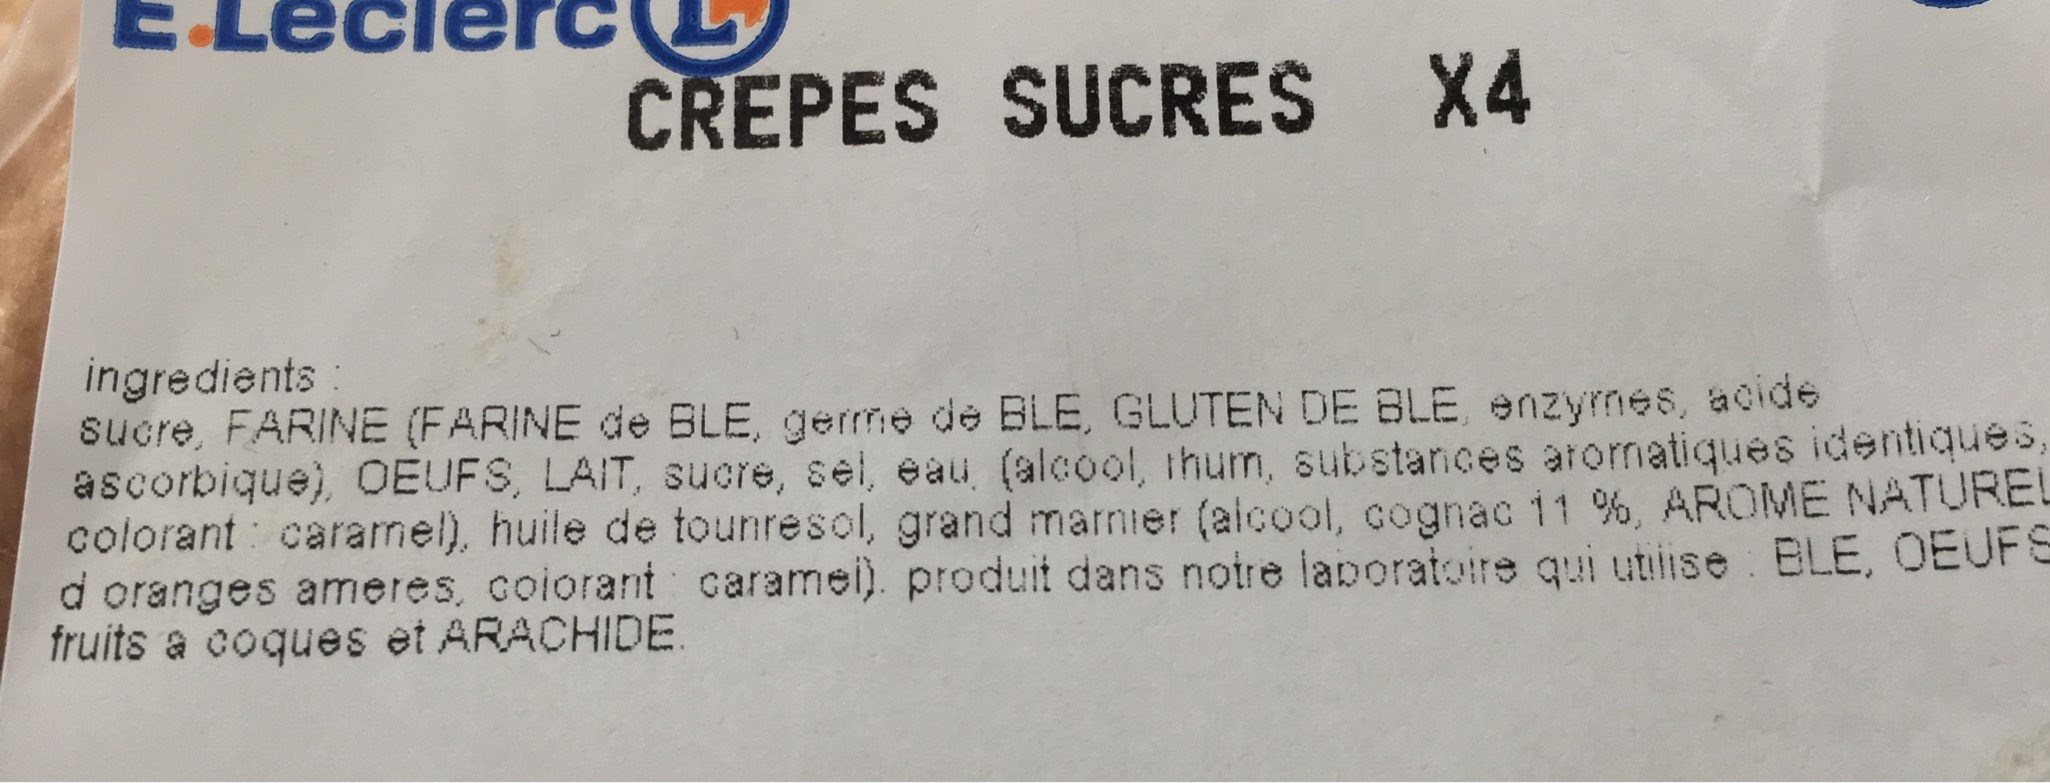 Crepes au sucre - Voedigswaarden